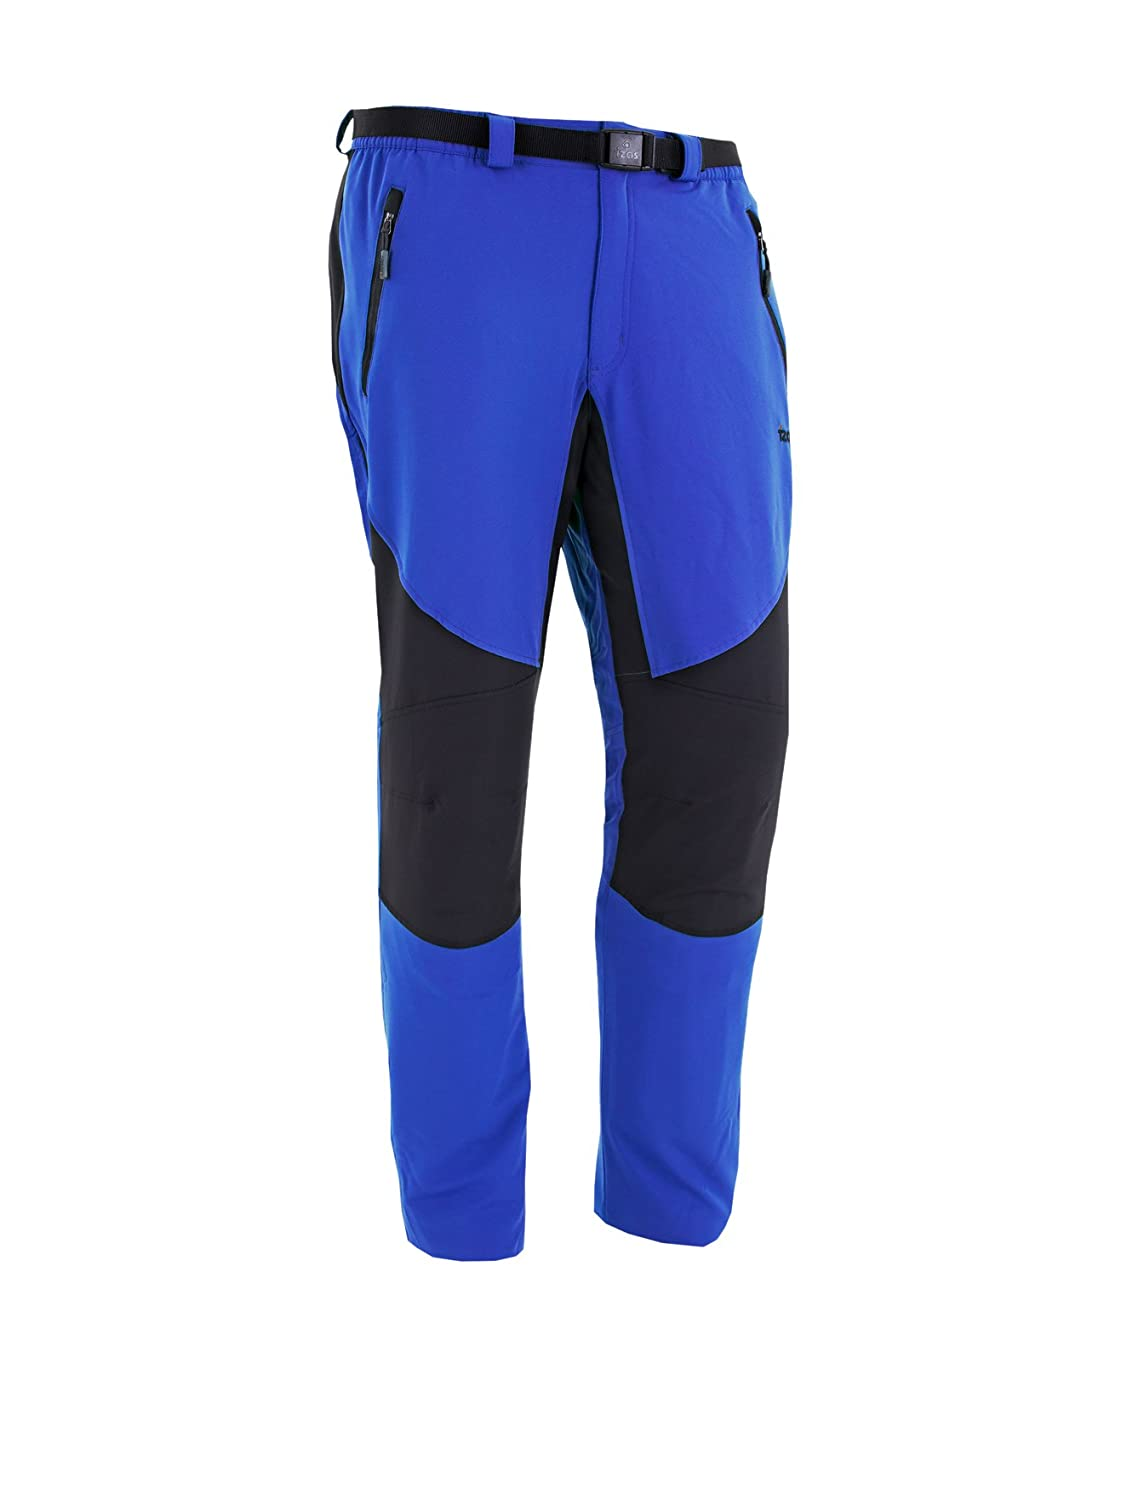 Men's Mountain Trousers izas Pug